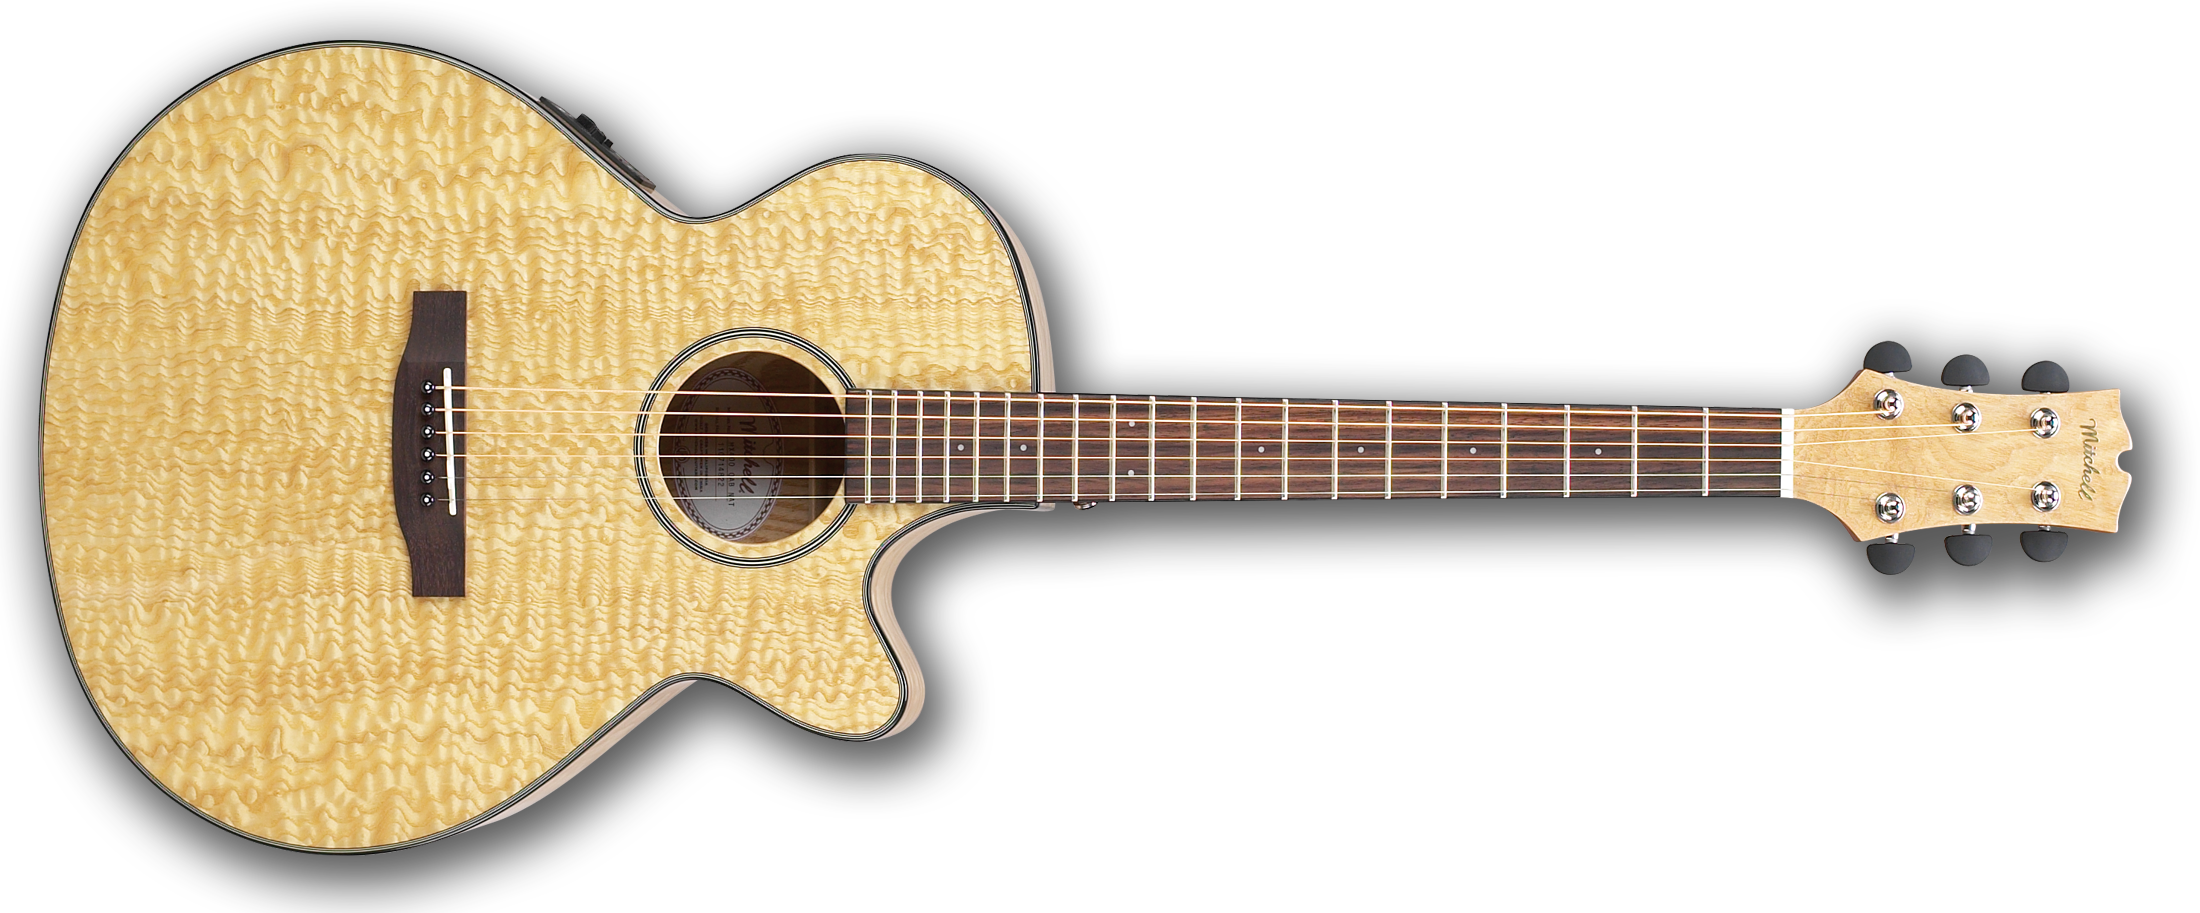 Mitchell MX400 Exotic Wood Guitar Quilted Ash Burl